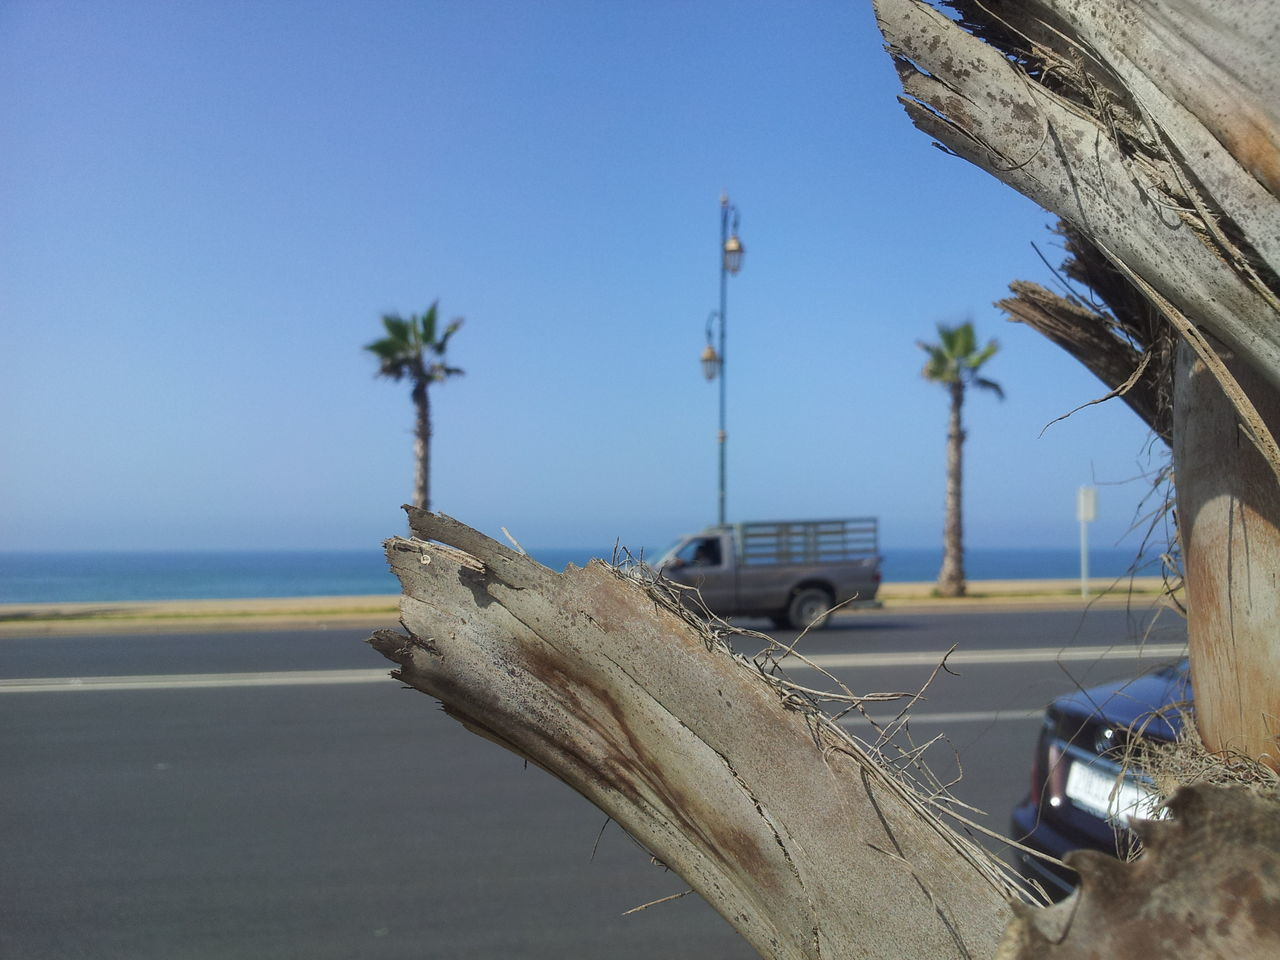 transportation, clear sky, day, no people, mode of transport, outdoors, blue, palm tree, nature, beach, sky, close-up